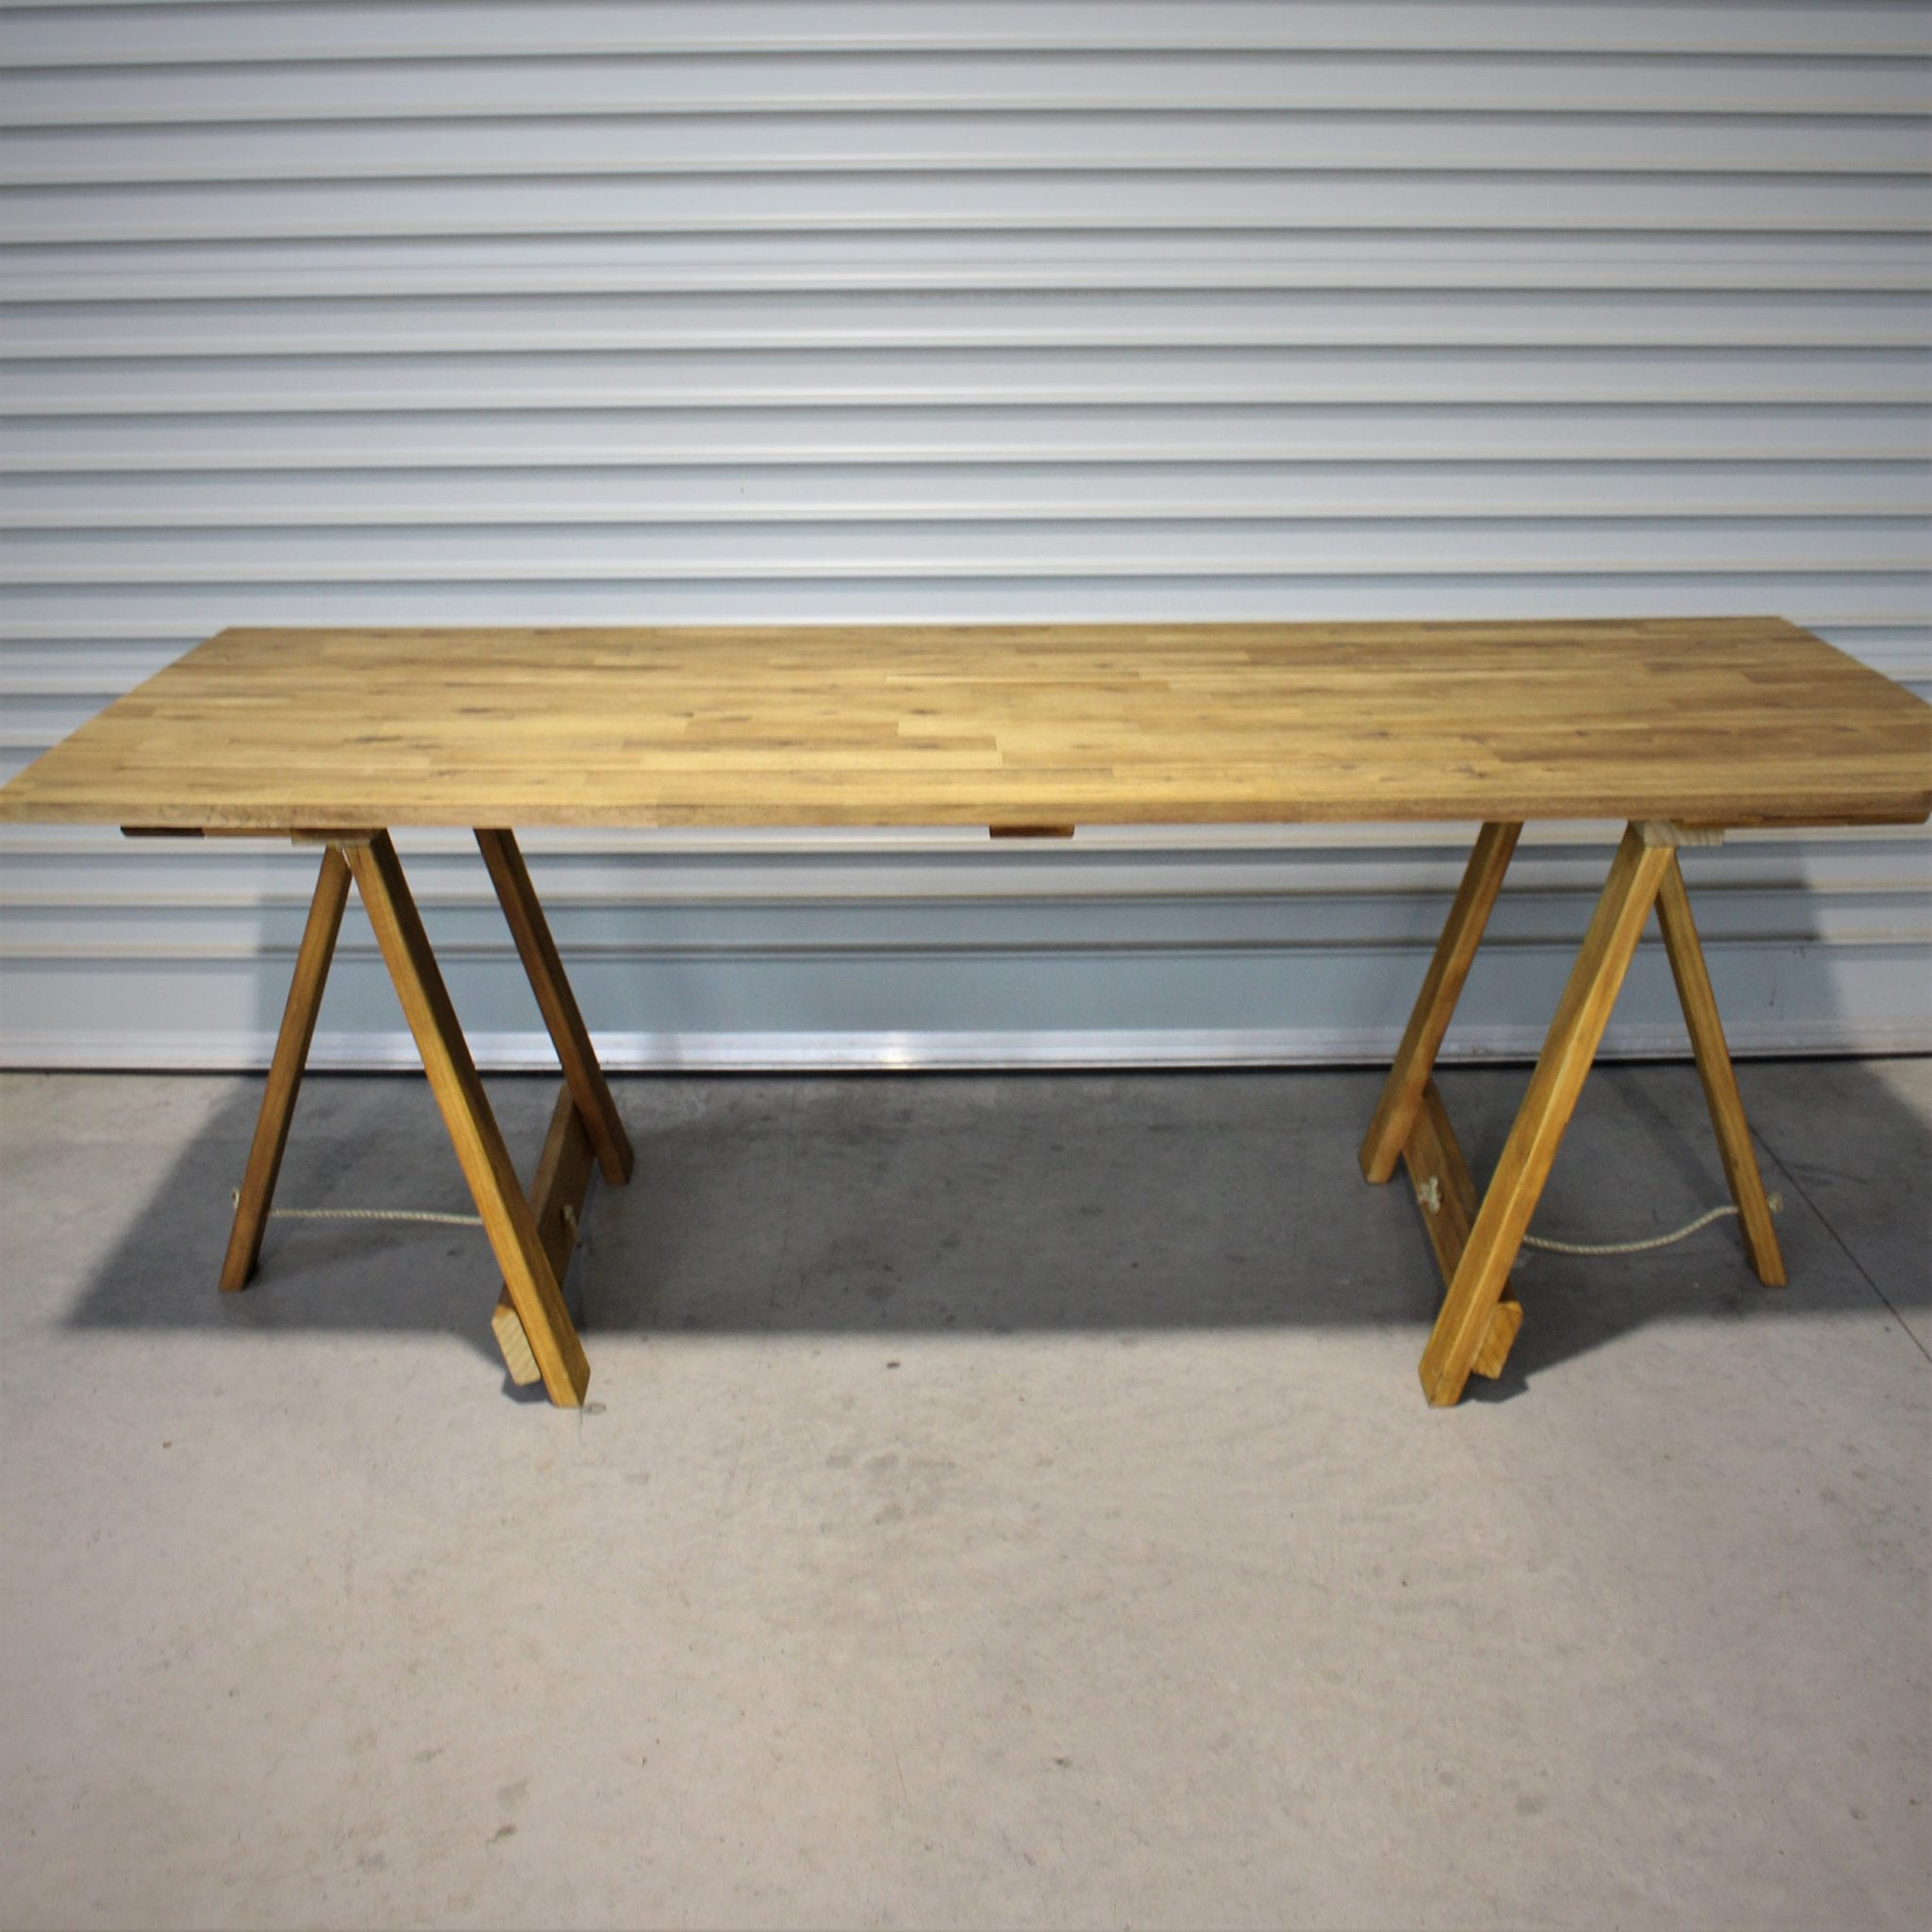 Wooden trestle table 2 2m